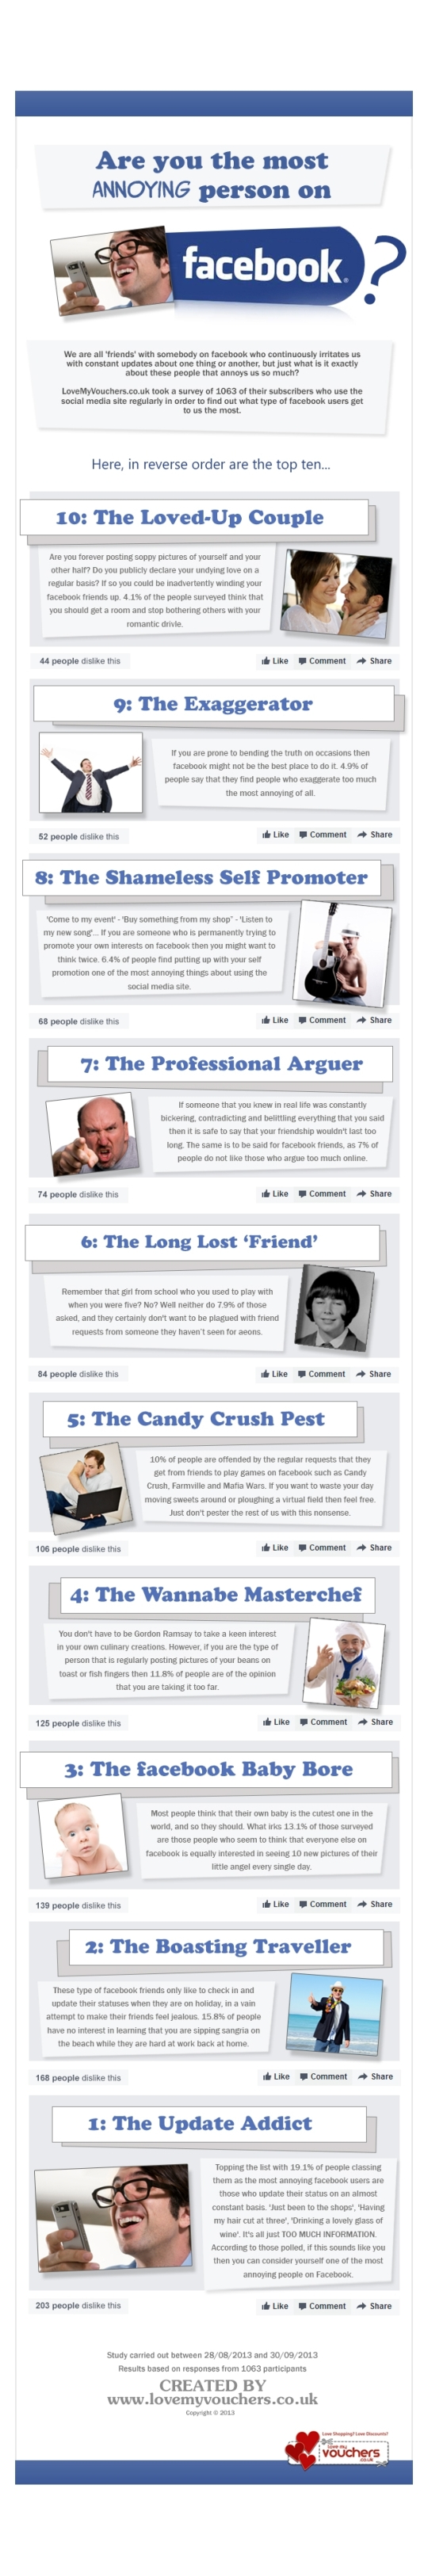 annoying-facebook-user-infographic_650